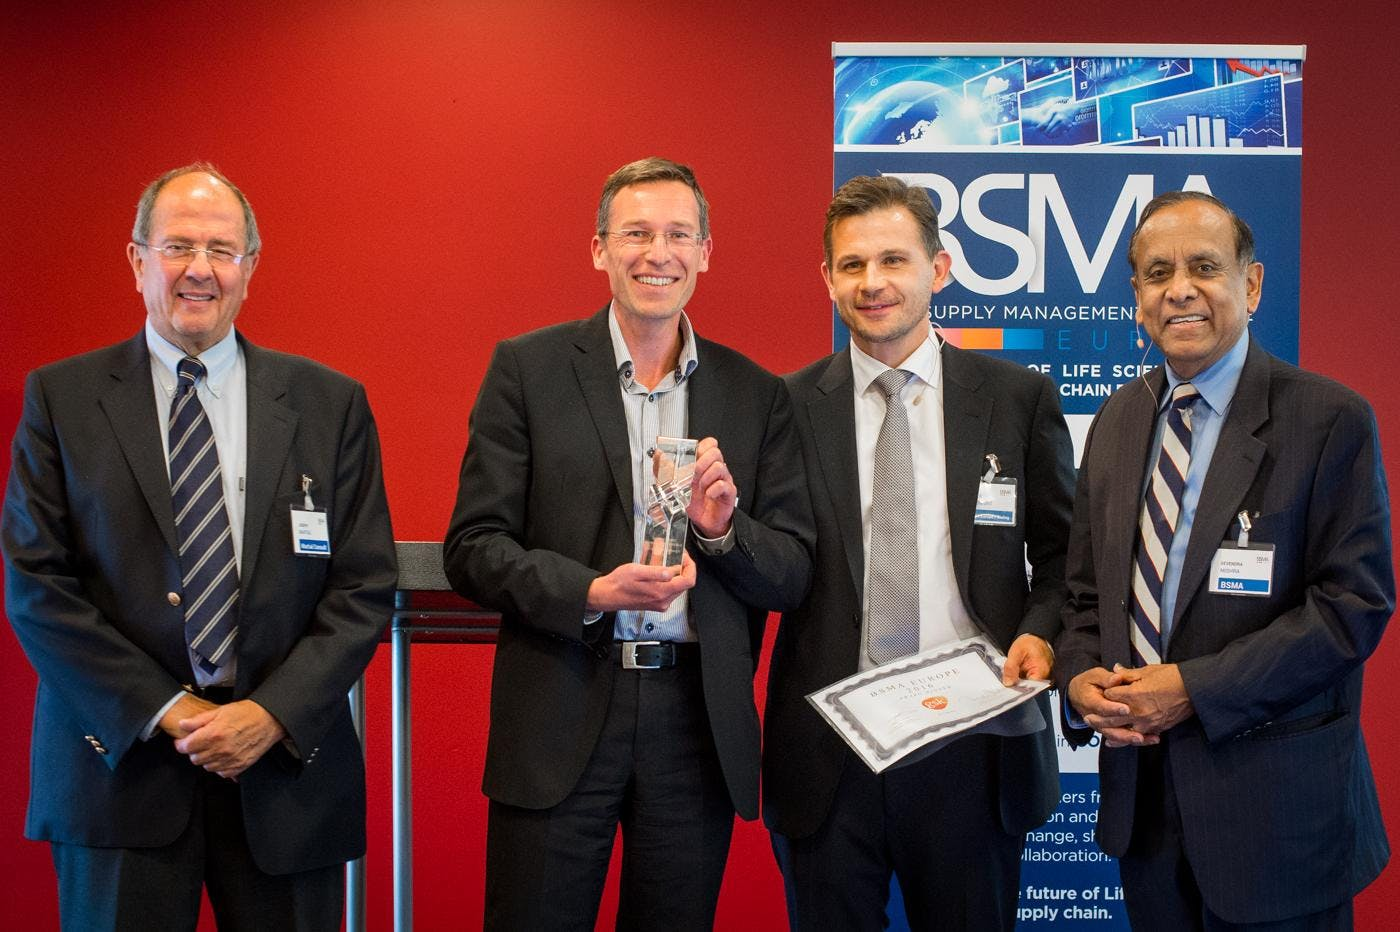 BSMA Europe 3rd annual conference